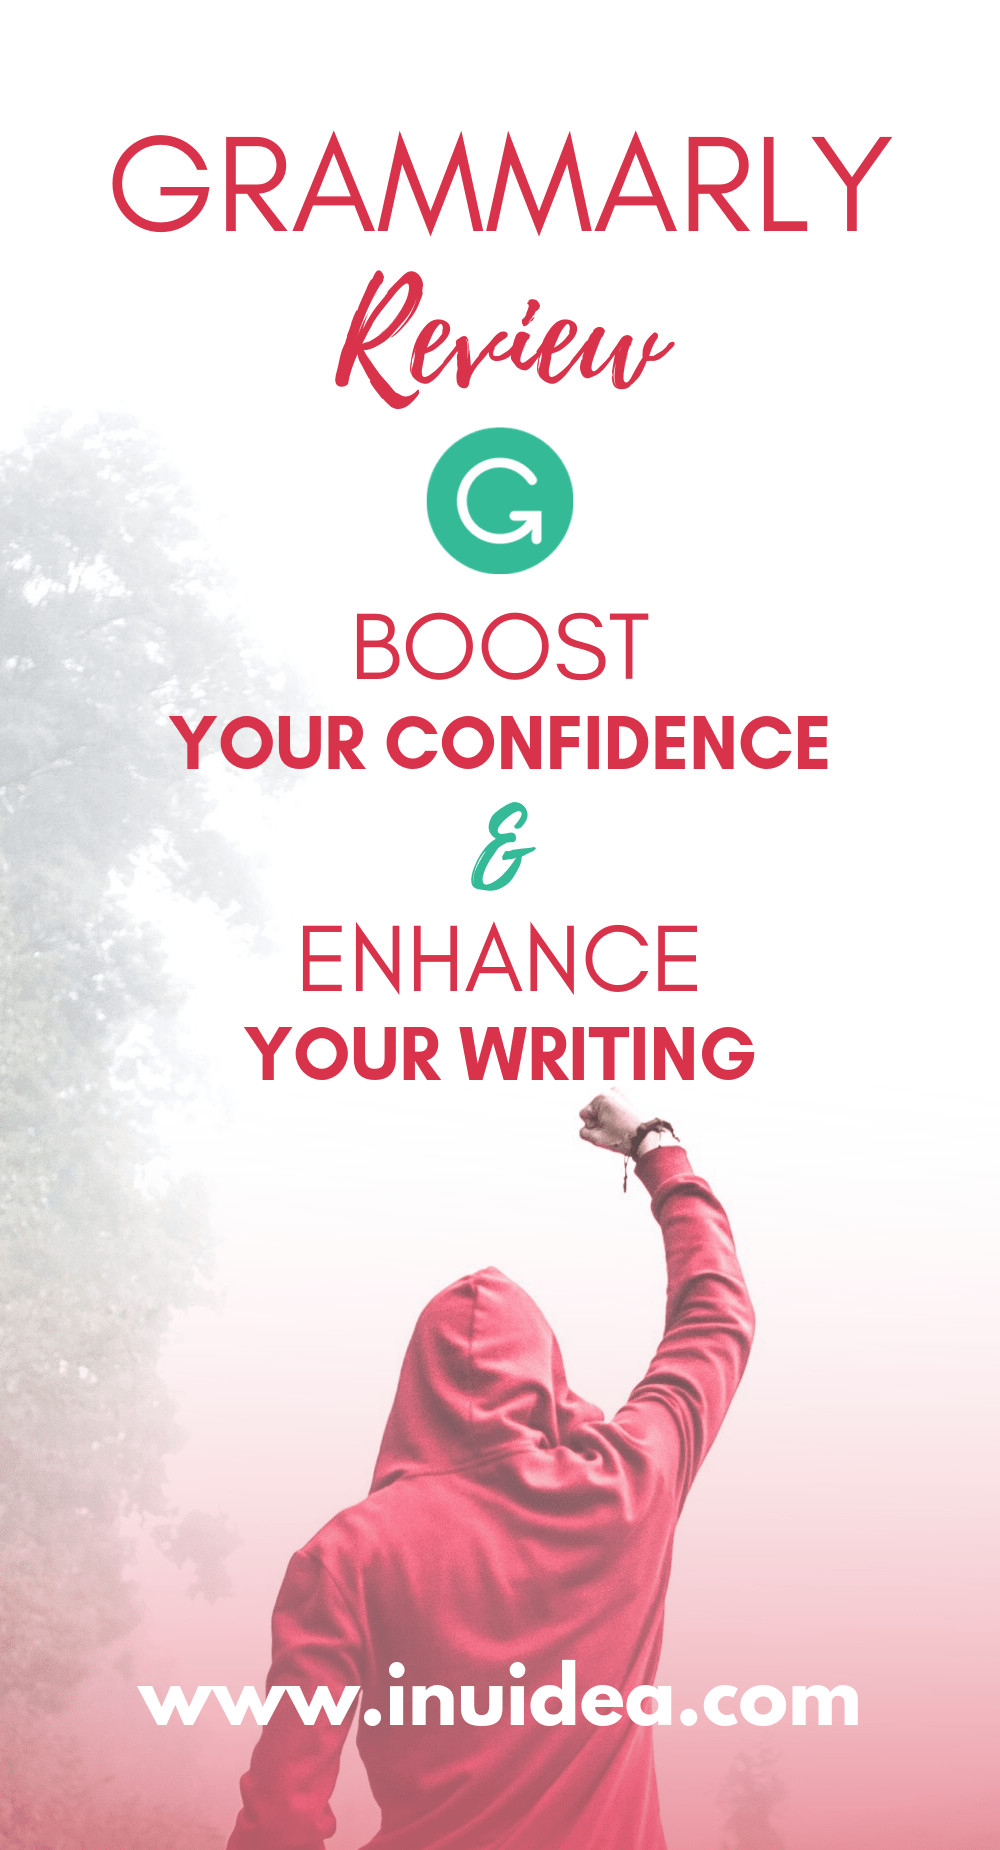 Grammarly Offer